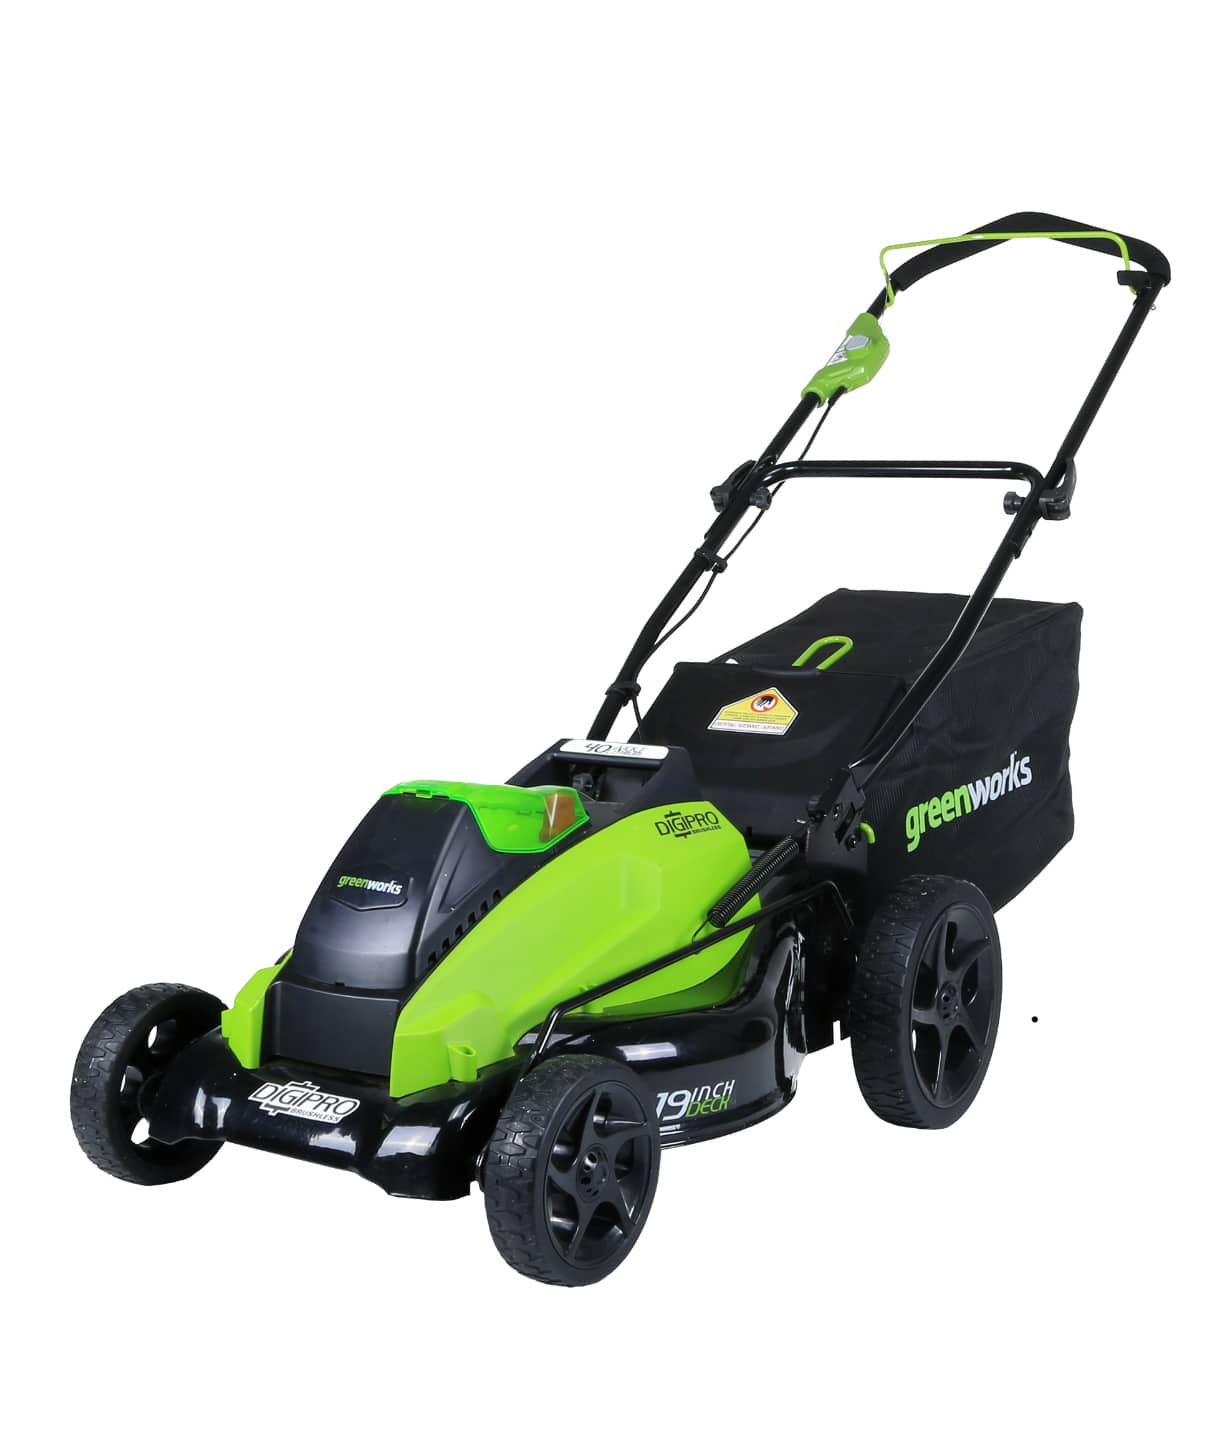 Greenworks-2501302-40V-G-MAX-Cordless-Lithium-Ion-19-in-3-in-1-Lawn-Mower-Bare-Tool 175.99$ Walmart